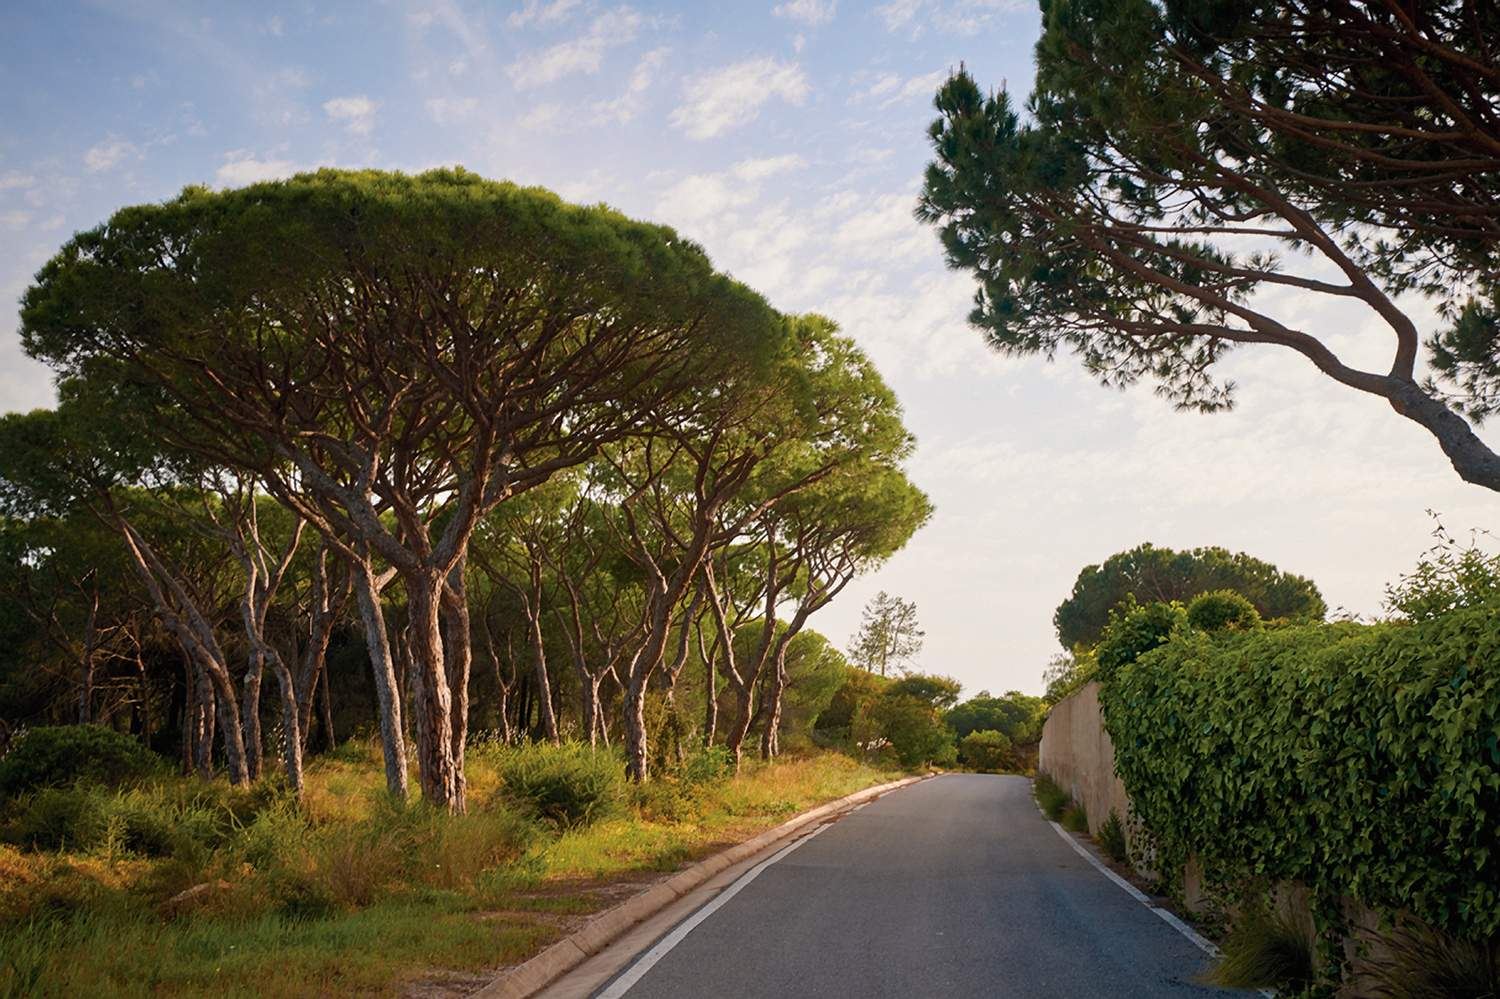 Trees on the road